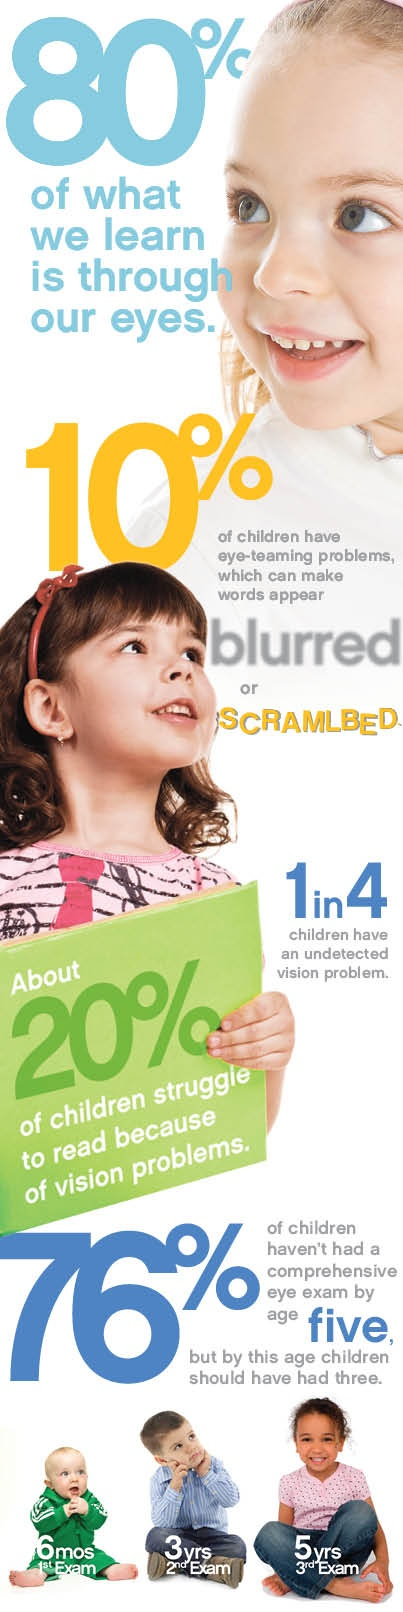 4947ac6e432 Kids vision health is important early on!